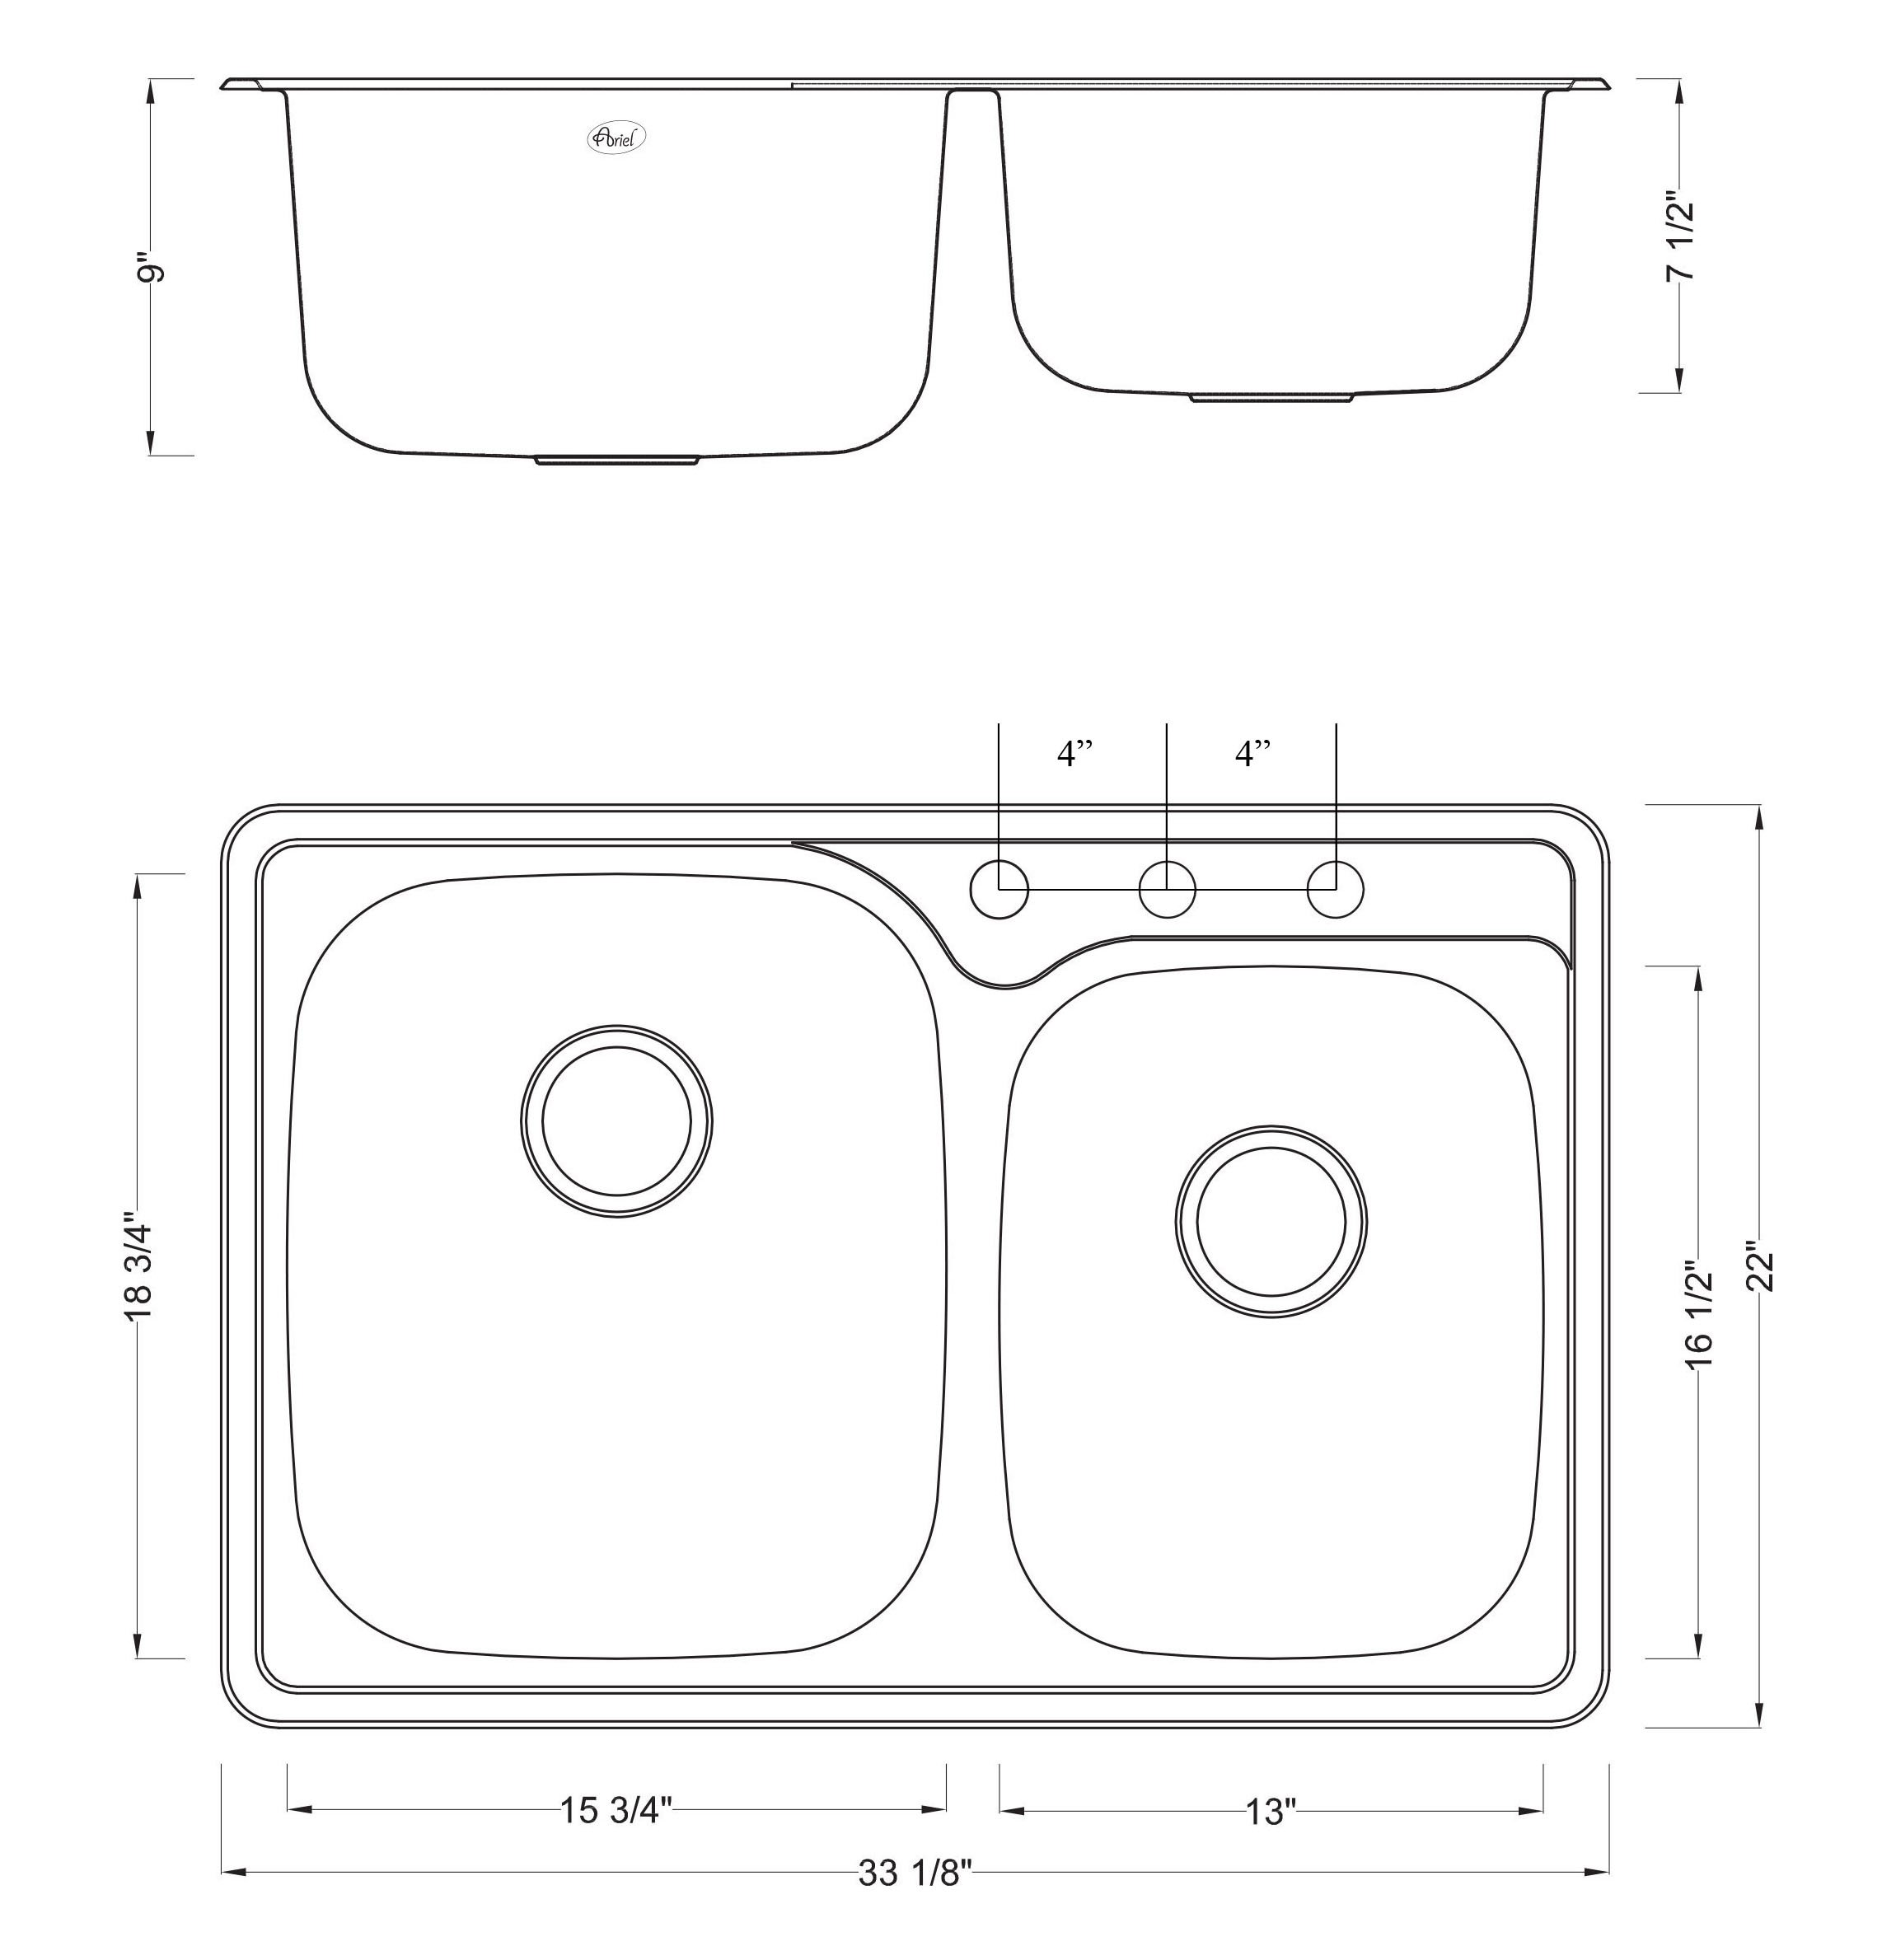 33 Inch Top-mount / Drop-in Stainless Steel Double Bowl Kitchen Sink - 18 Gauge with Deluxe Liift Out Strainer by CBath